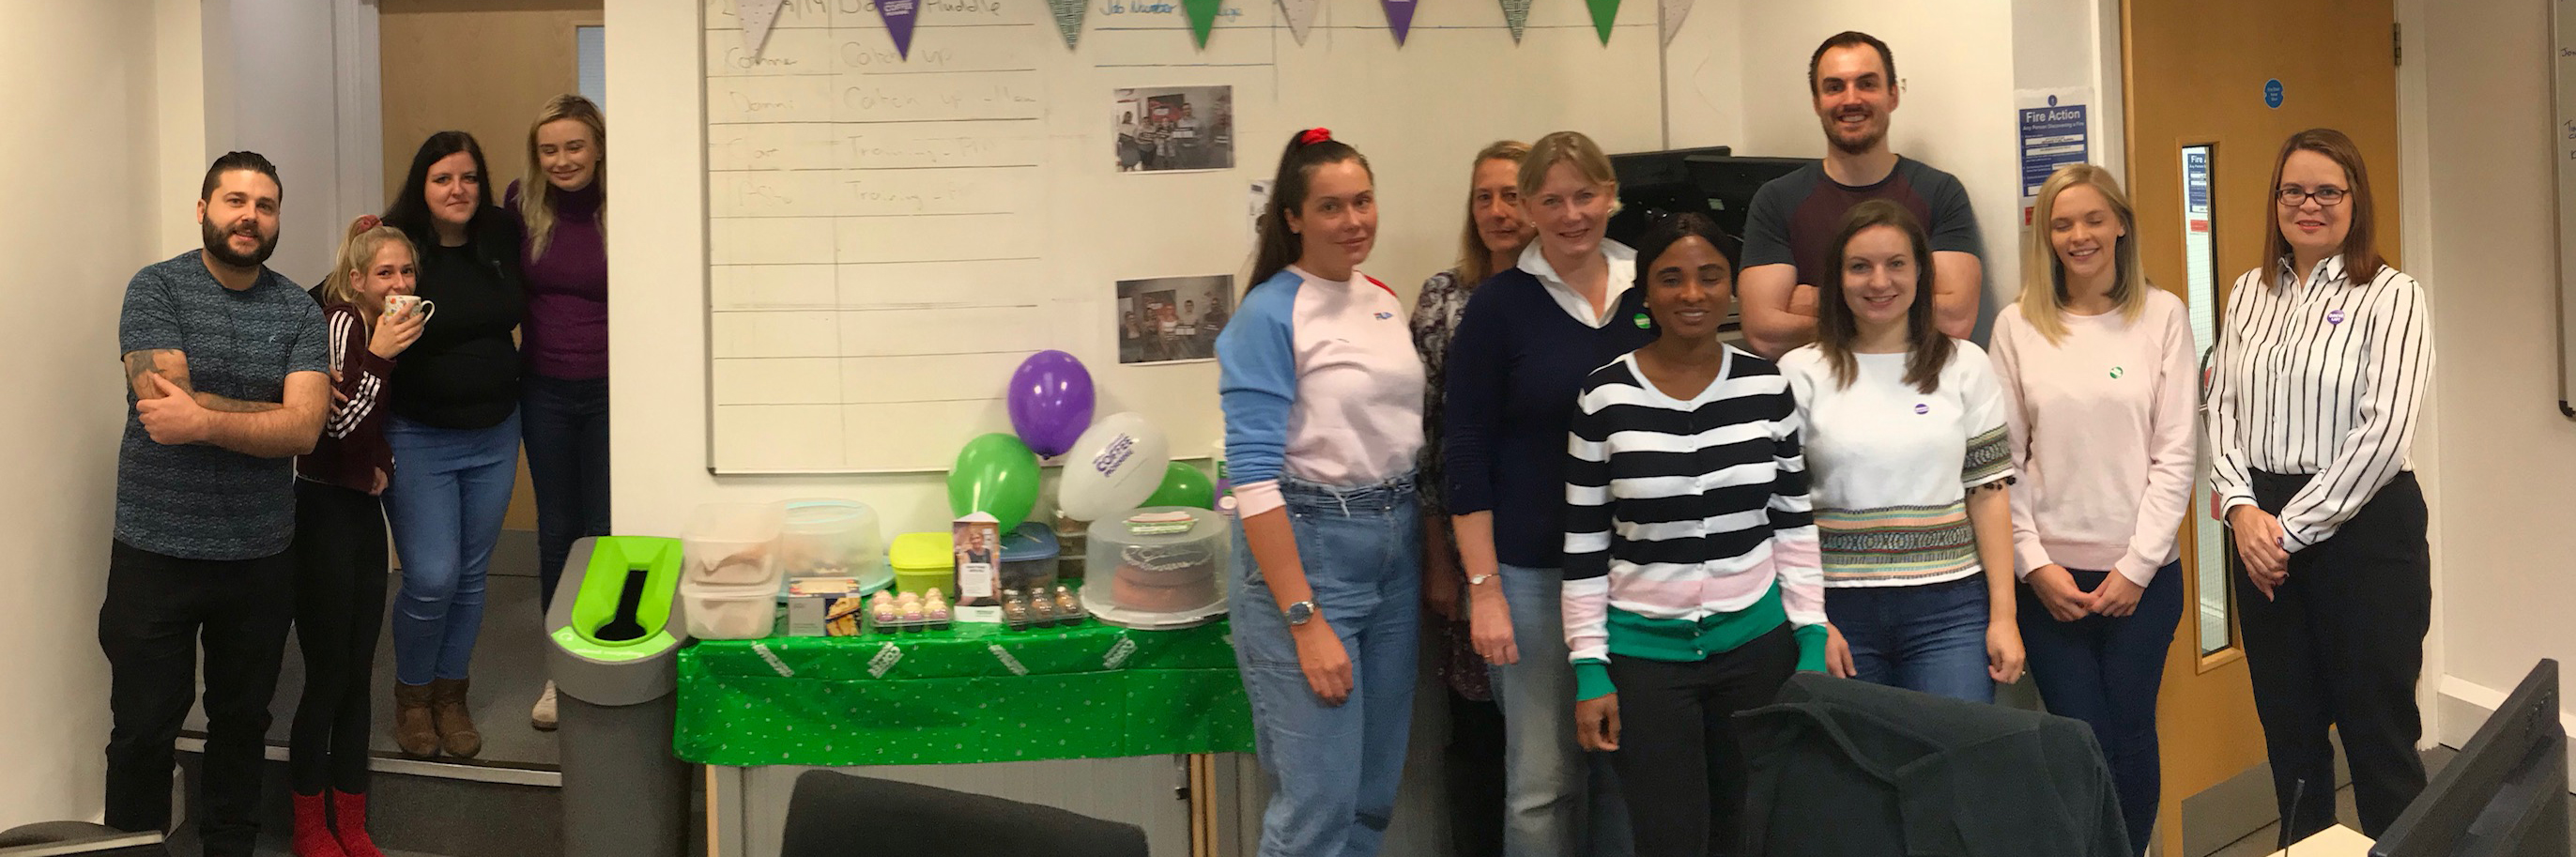 Opals Group raises over £100 for Macmillan's World's Biggest Coffee Morning